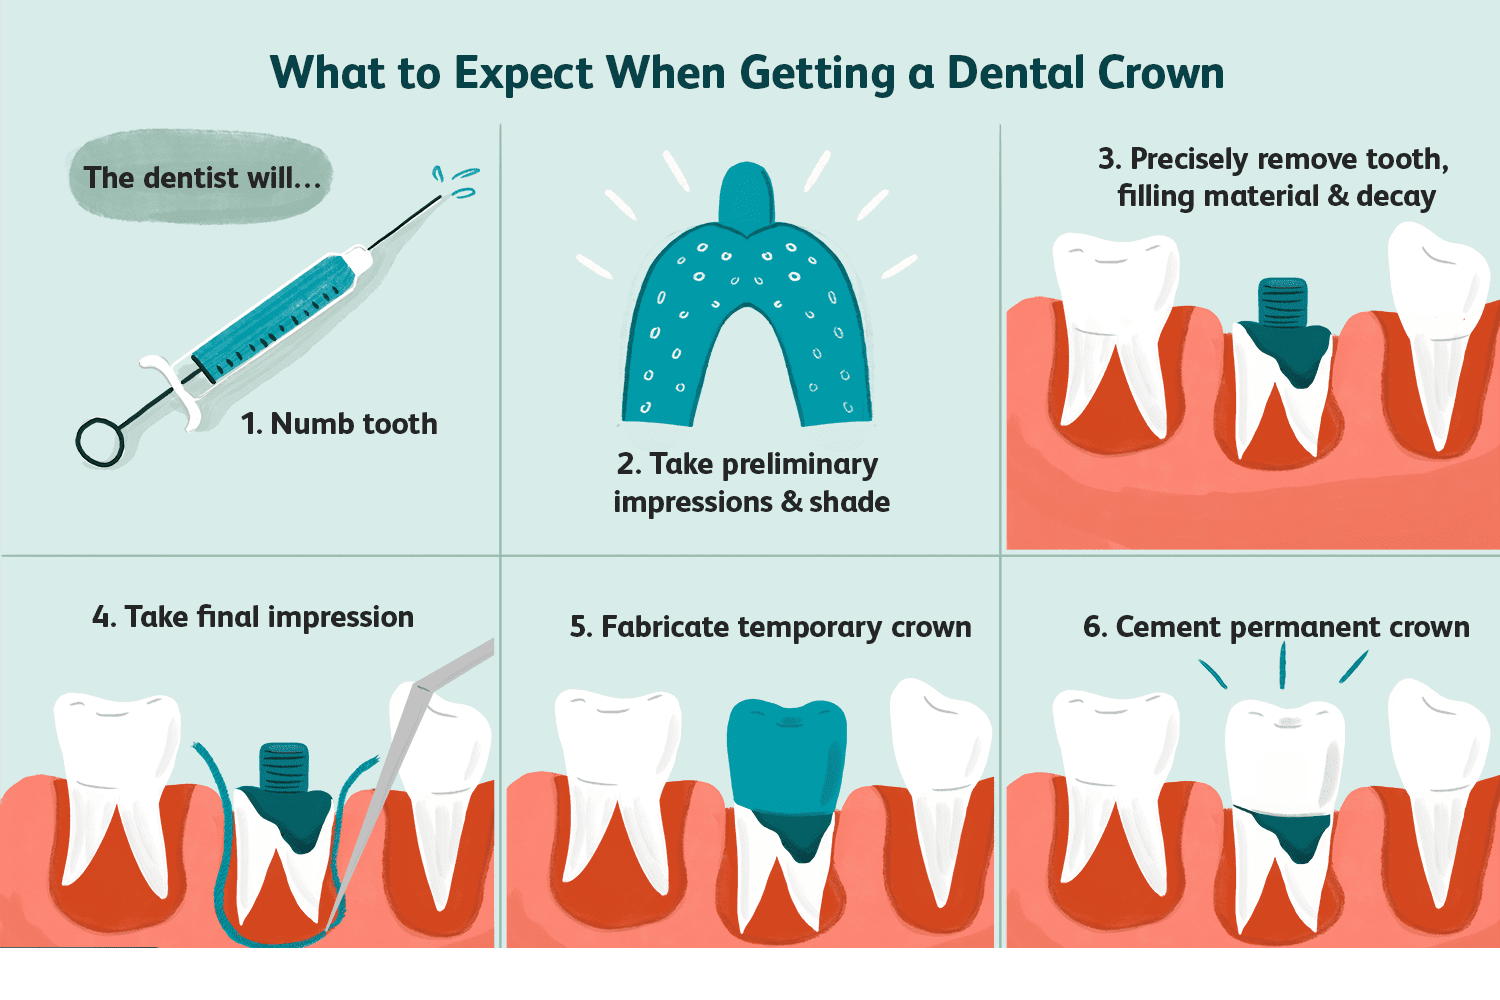 numbing-the-tooth-in-a-dental-crown-procedure-1059036_final-788dfa05acf24255aa0d406f45df1b31.png